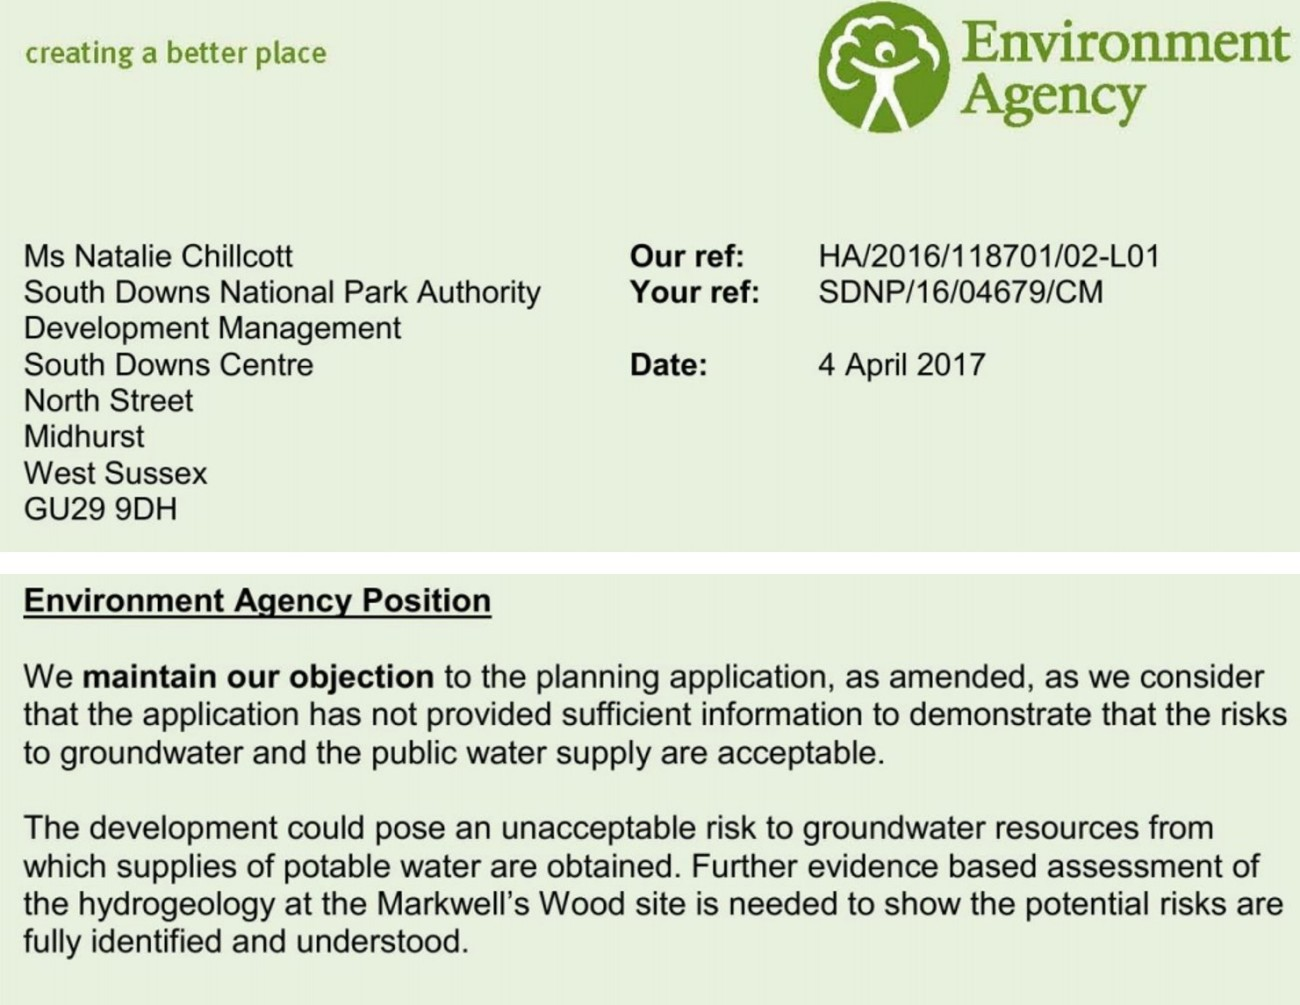 EA objection on Markwells Wood